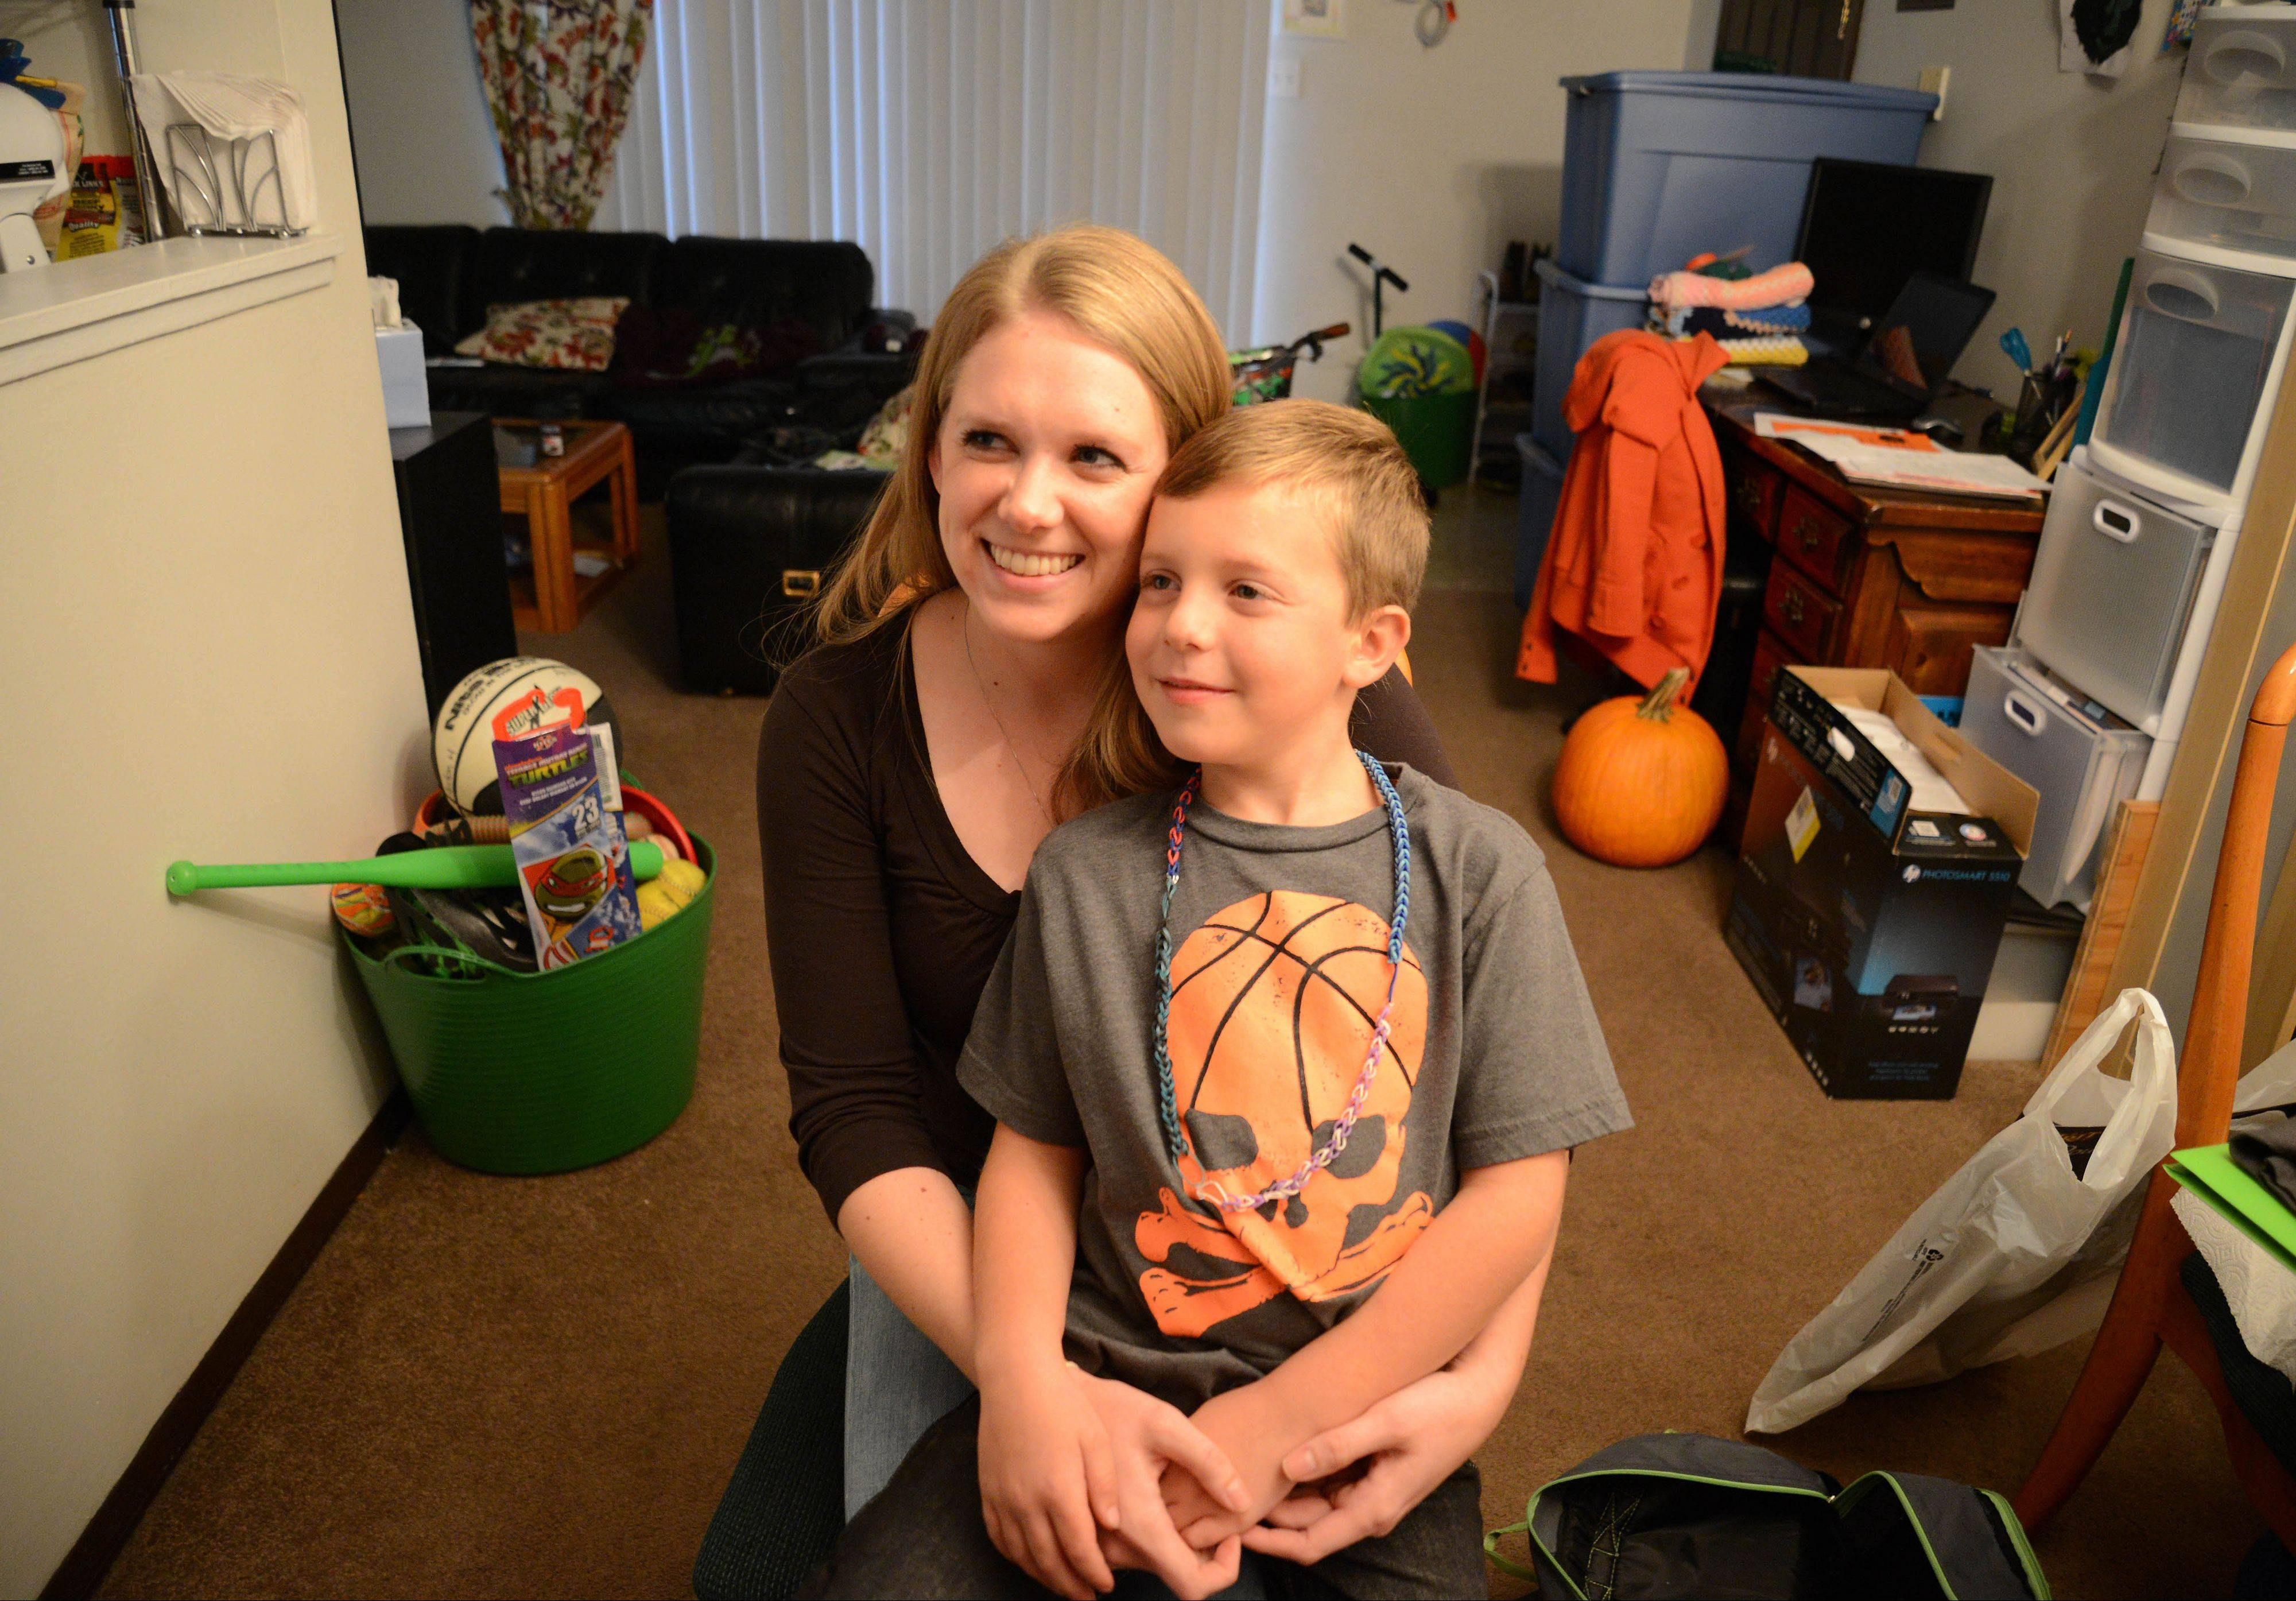 Bridge Communities, a Glen Ellyn-based nonprofit group, has changed the lives of more than 600 homeless families during the past 25 years. Alecia Hannemann and her 6-year-old son, Aidan, recently got help from the organization.